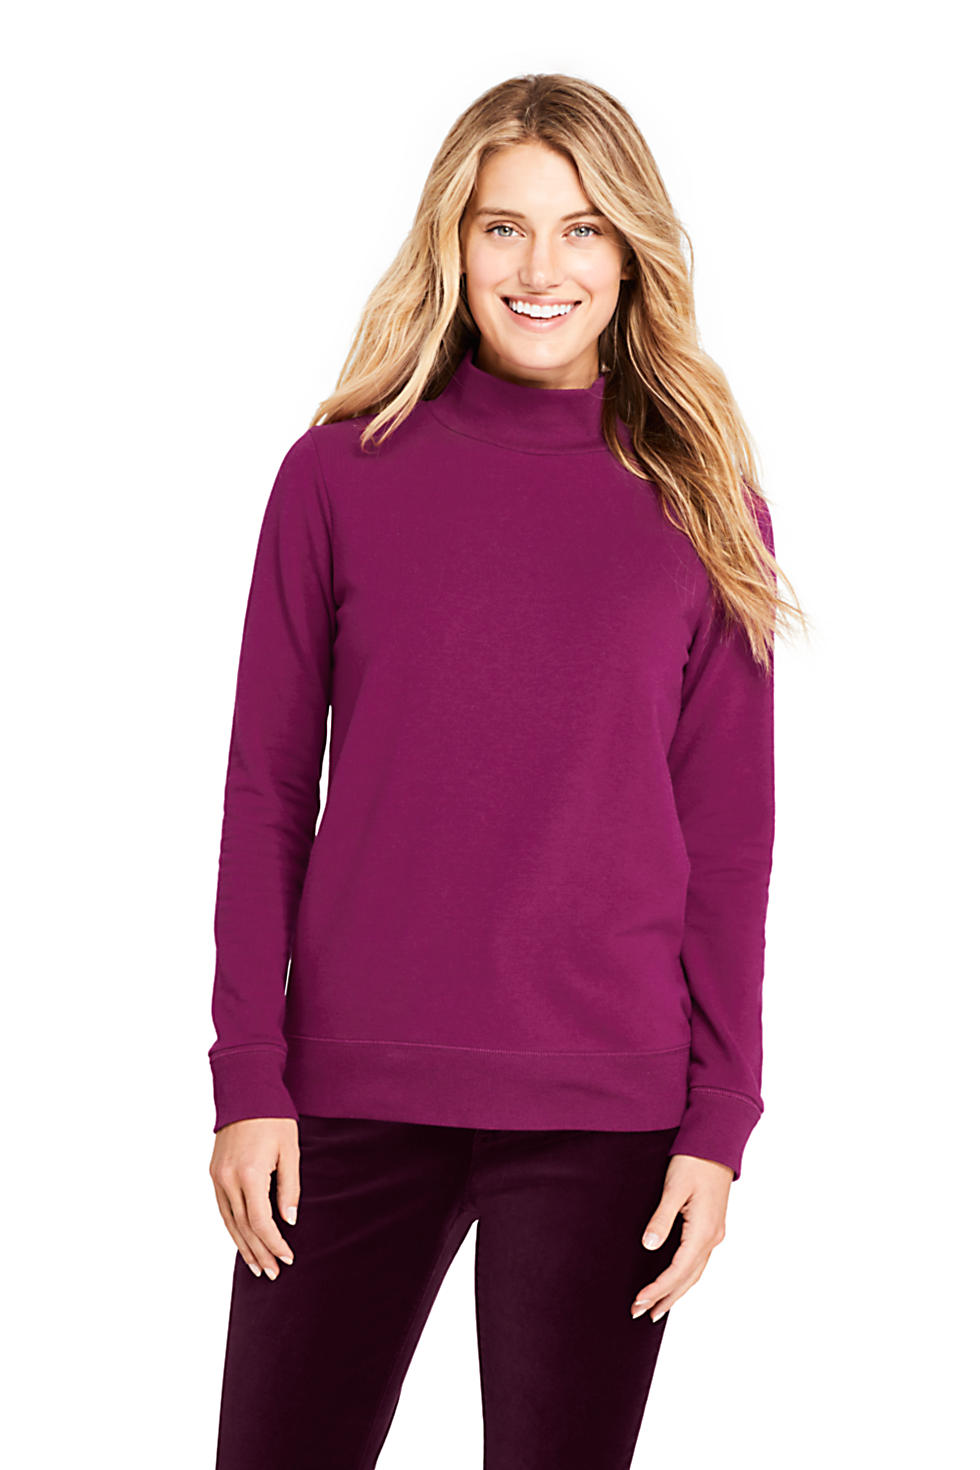 Lands End Womens Serious Sweats Turtleneck Long Sleeve Sweatshirt